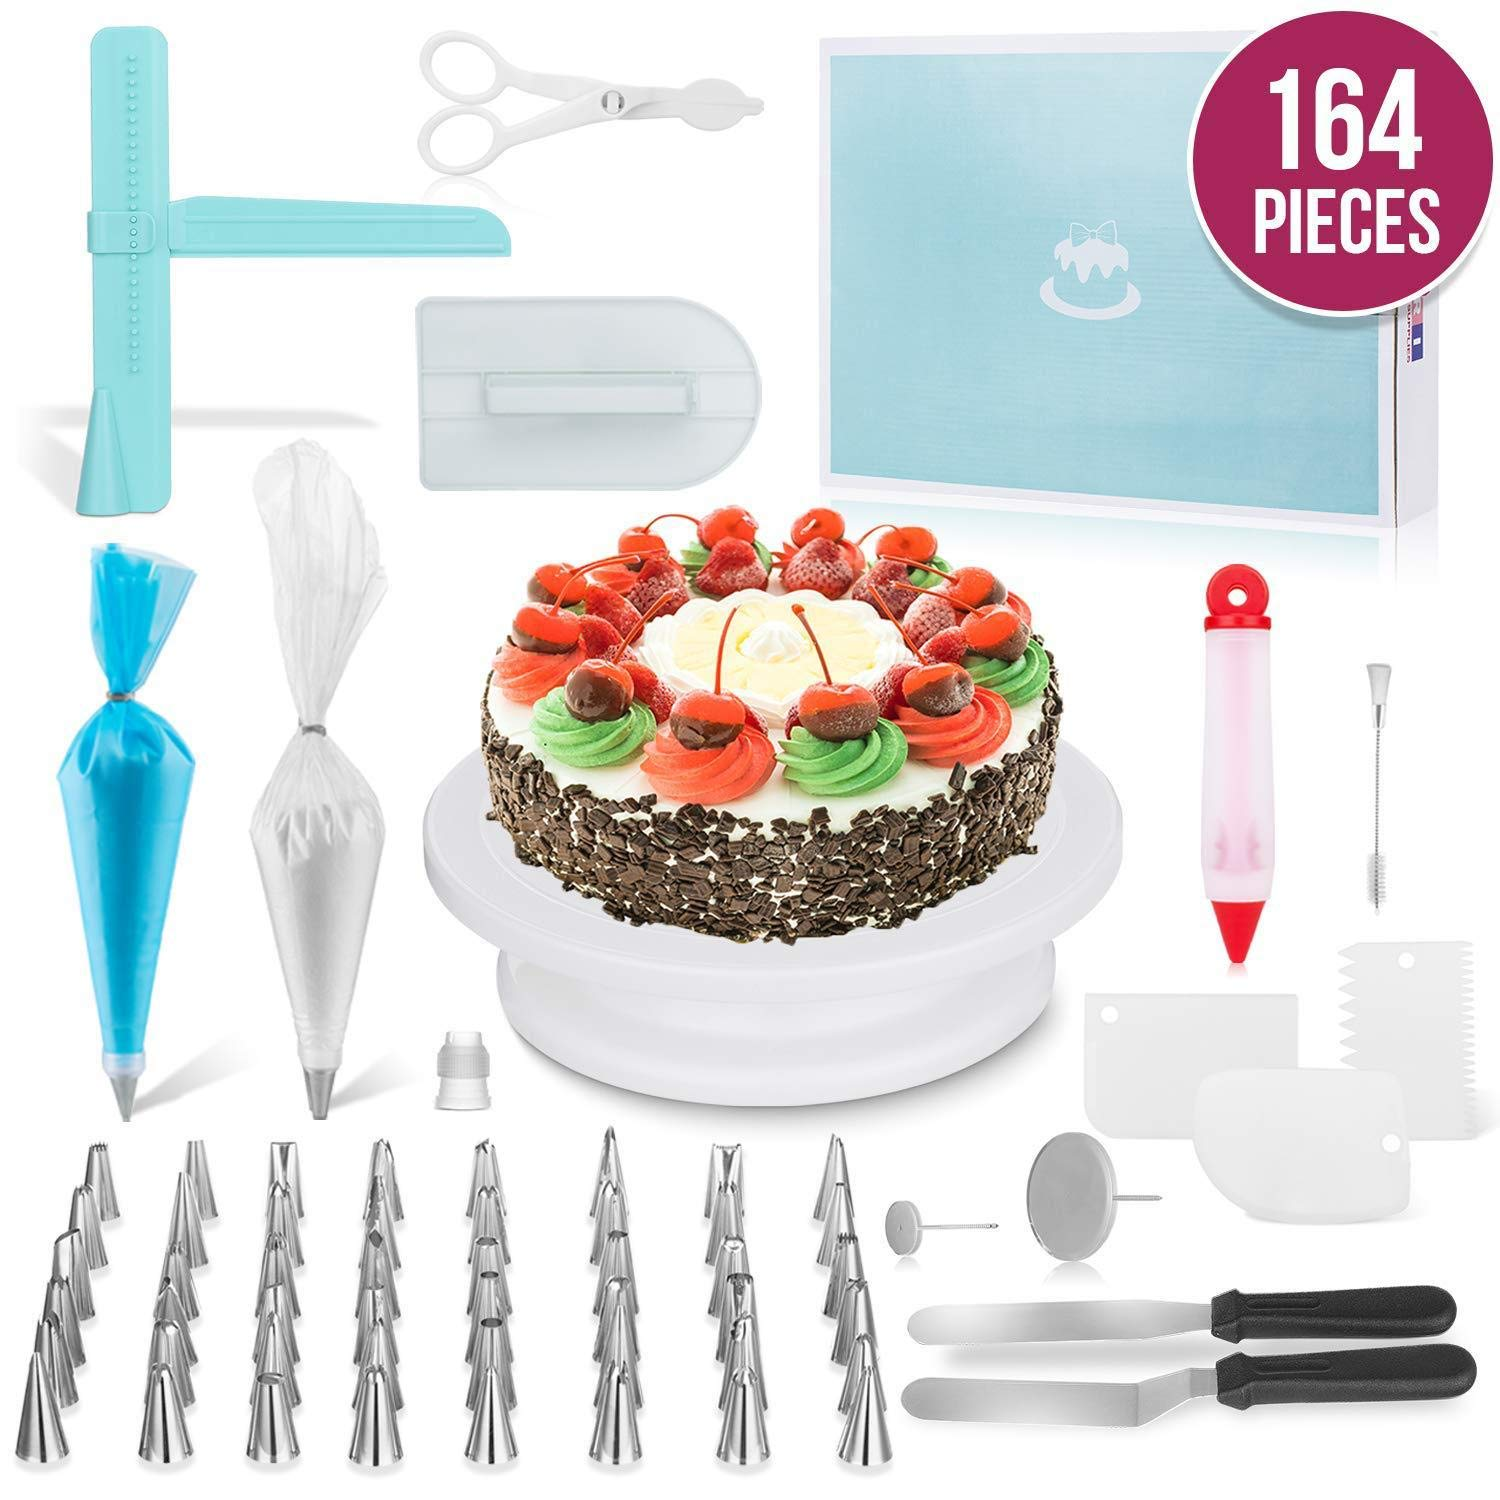 JHKJ 164 -Piece Cake Turntable Set Baking Tool DIY Tool Cake Decorating Kit Supplies by JHKJ (Image #1)